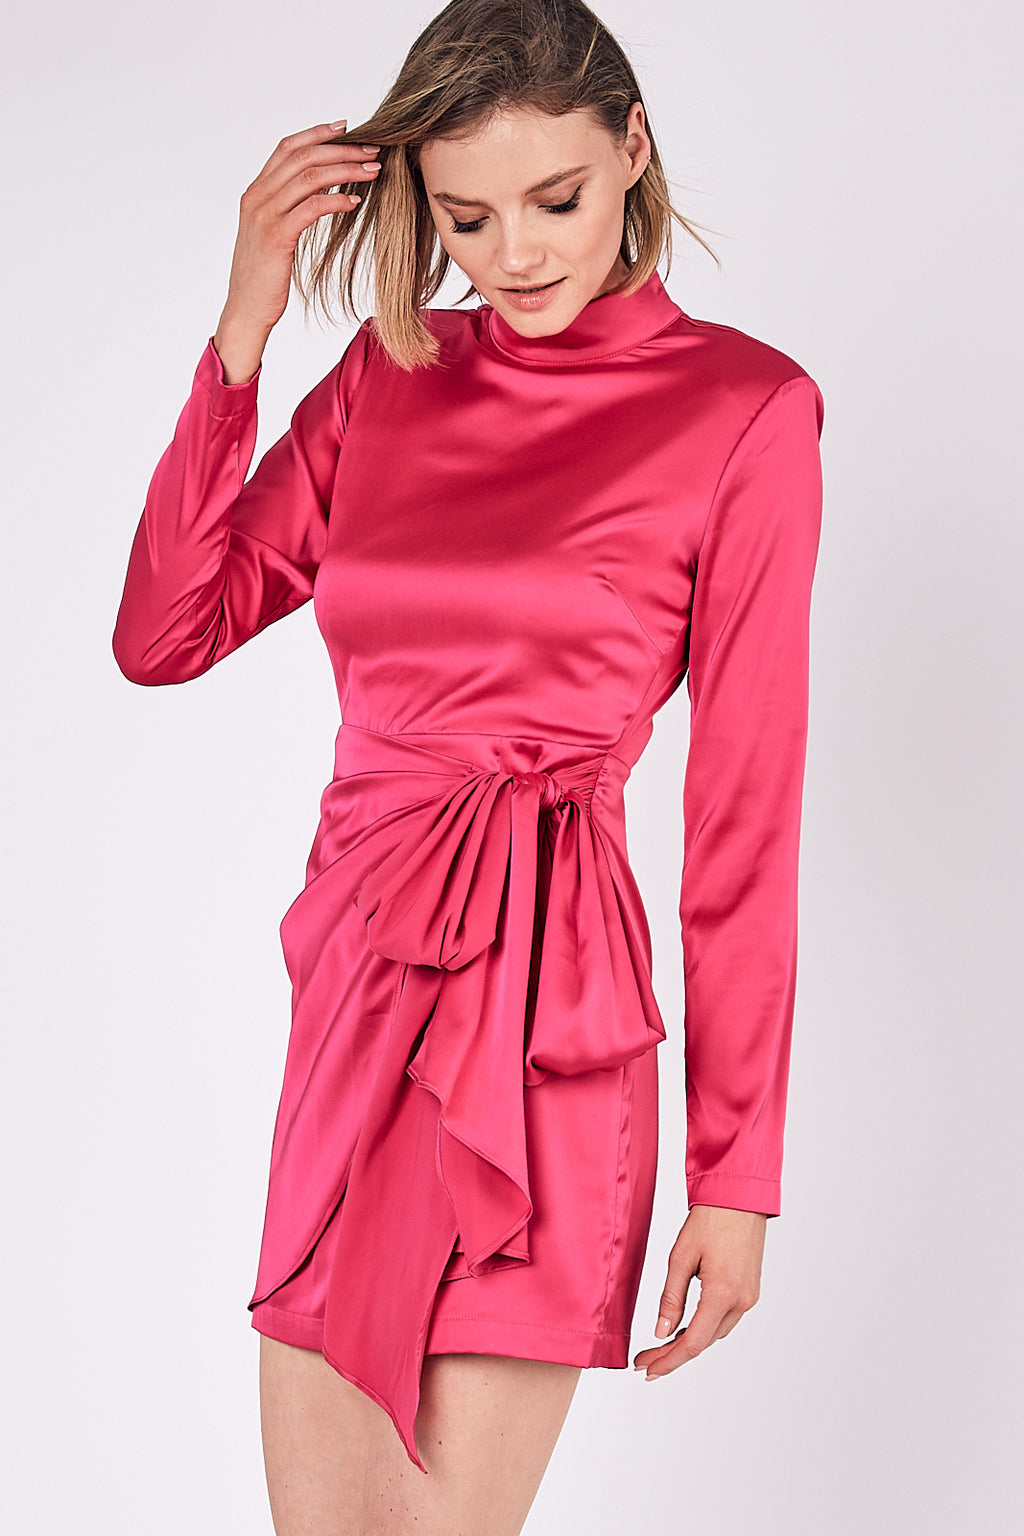 Glow Up Satin Wrap Dress - Hot Pink